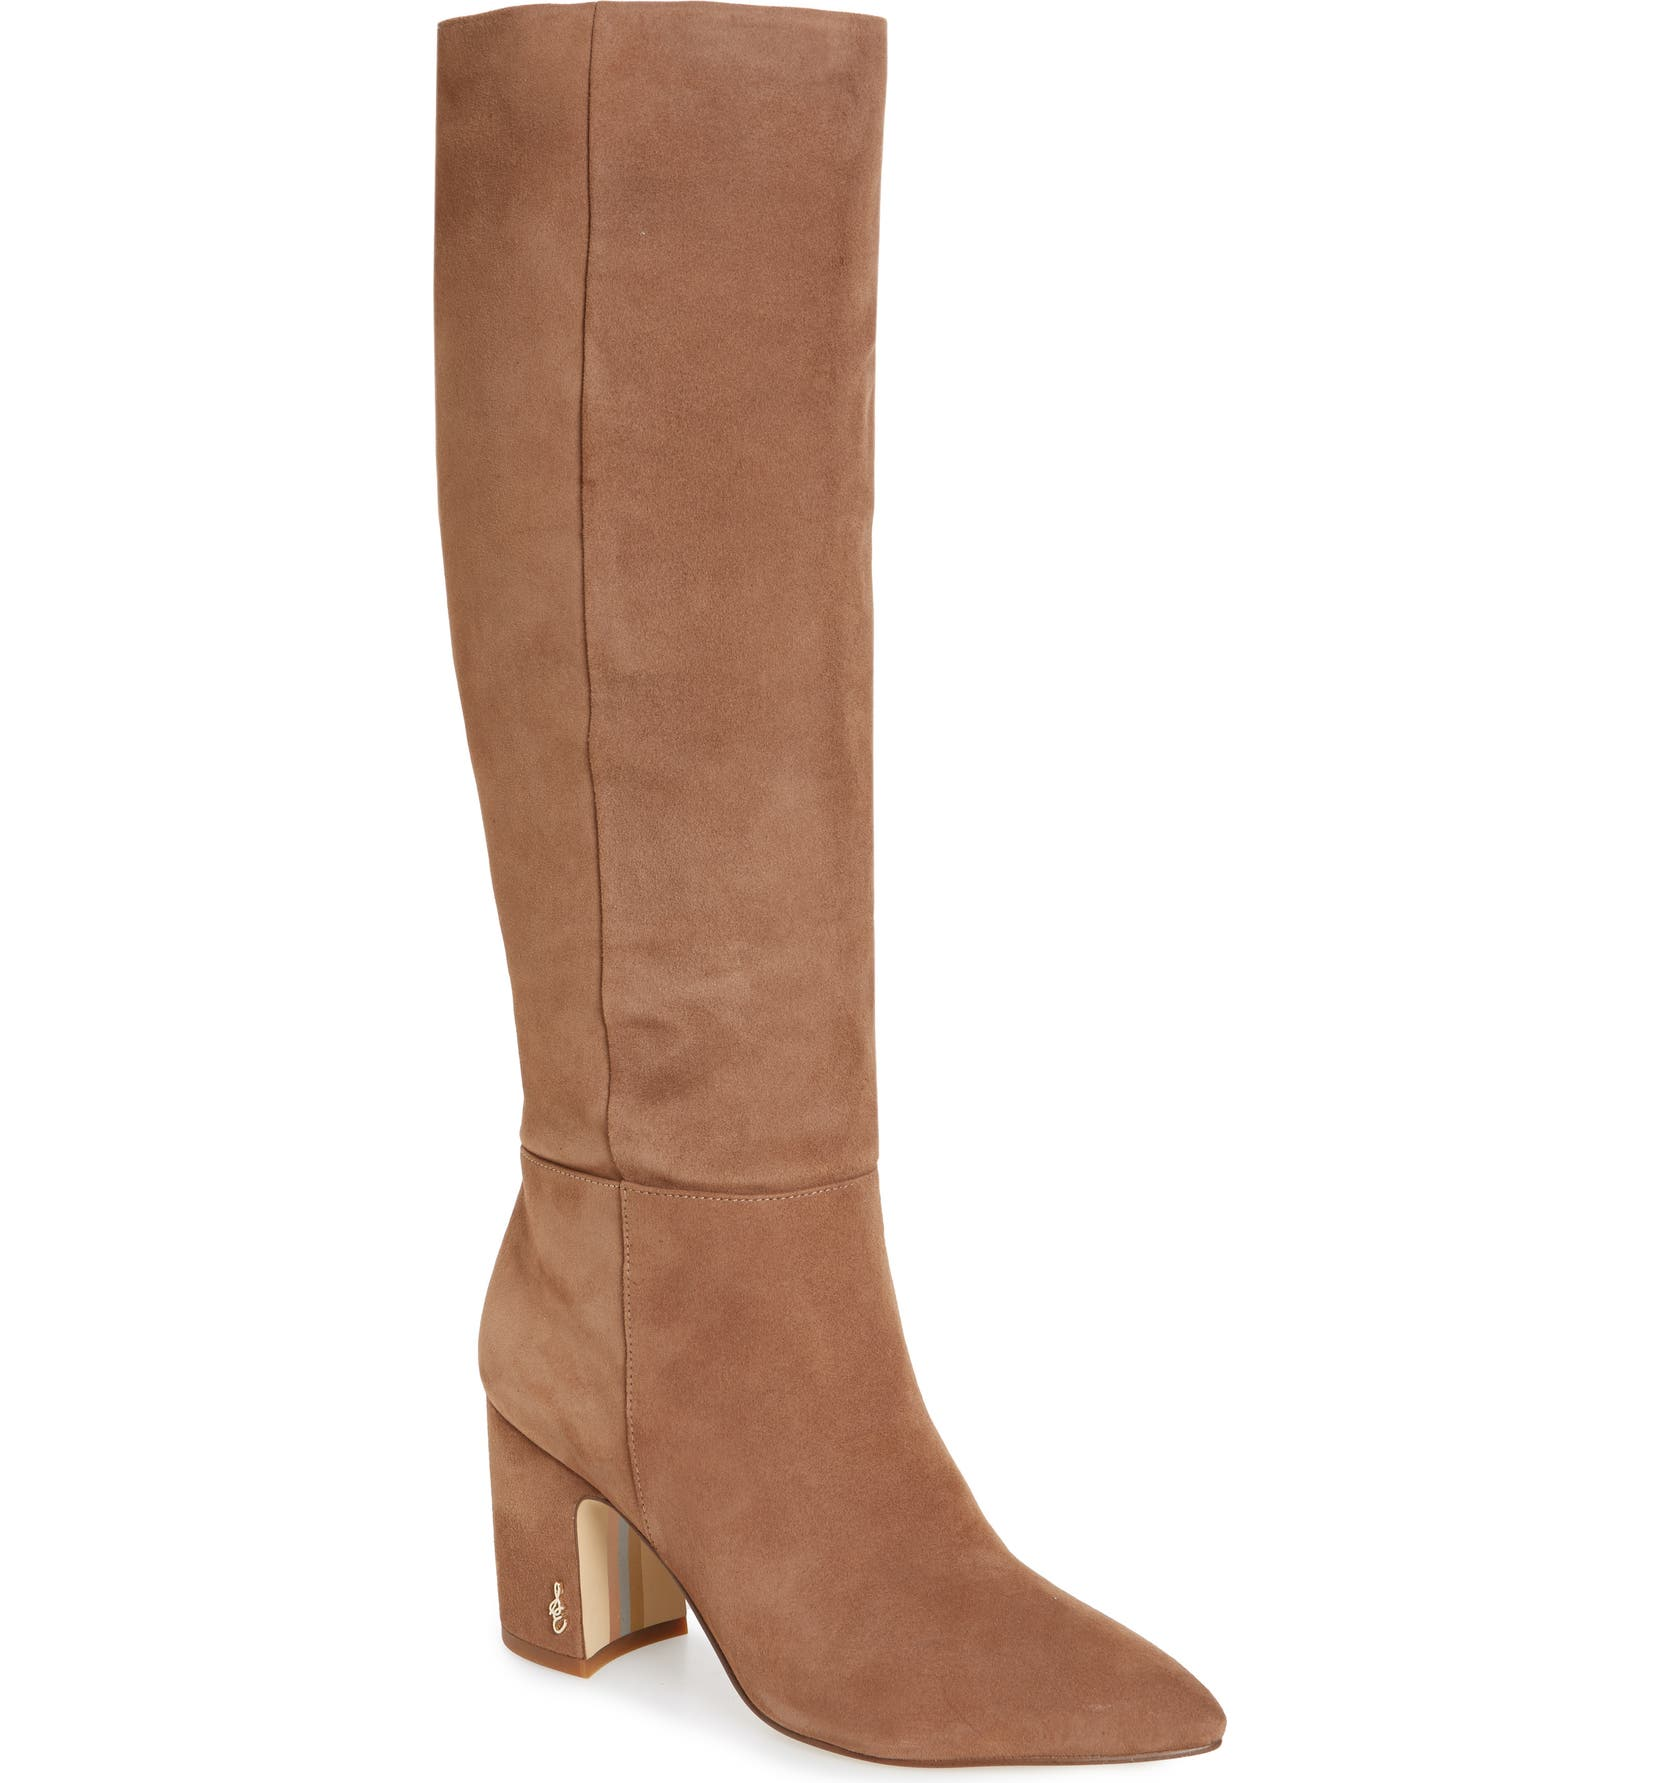 amazon beauty diversified in packaging Hiltin Knee High Boot